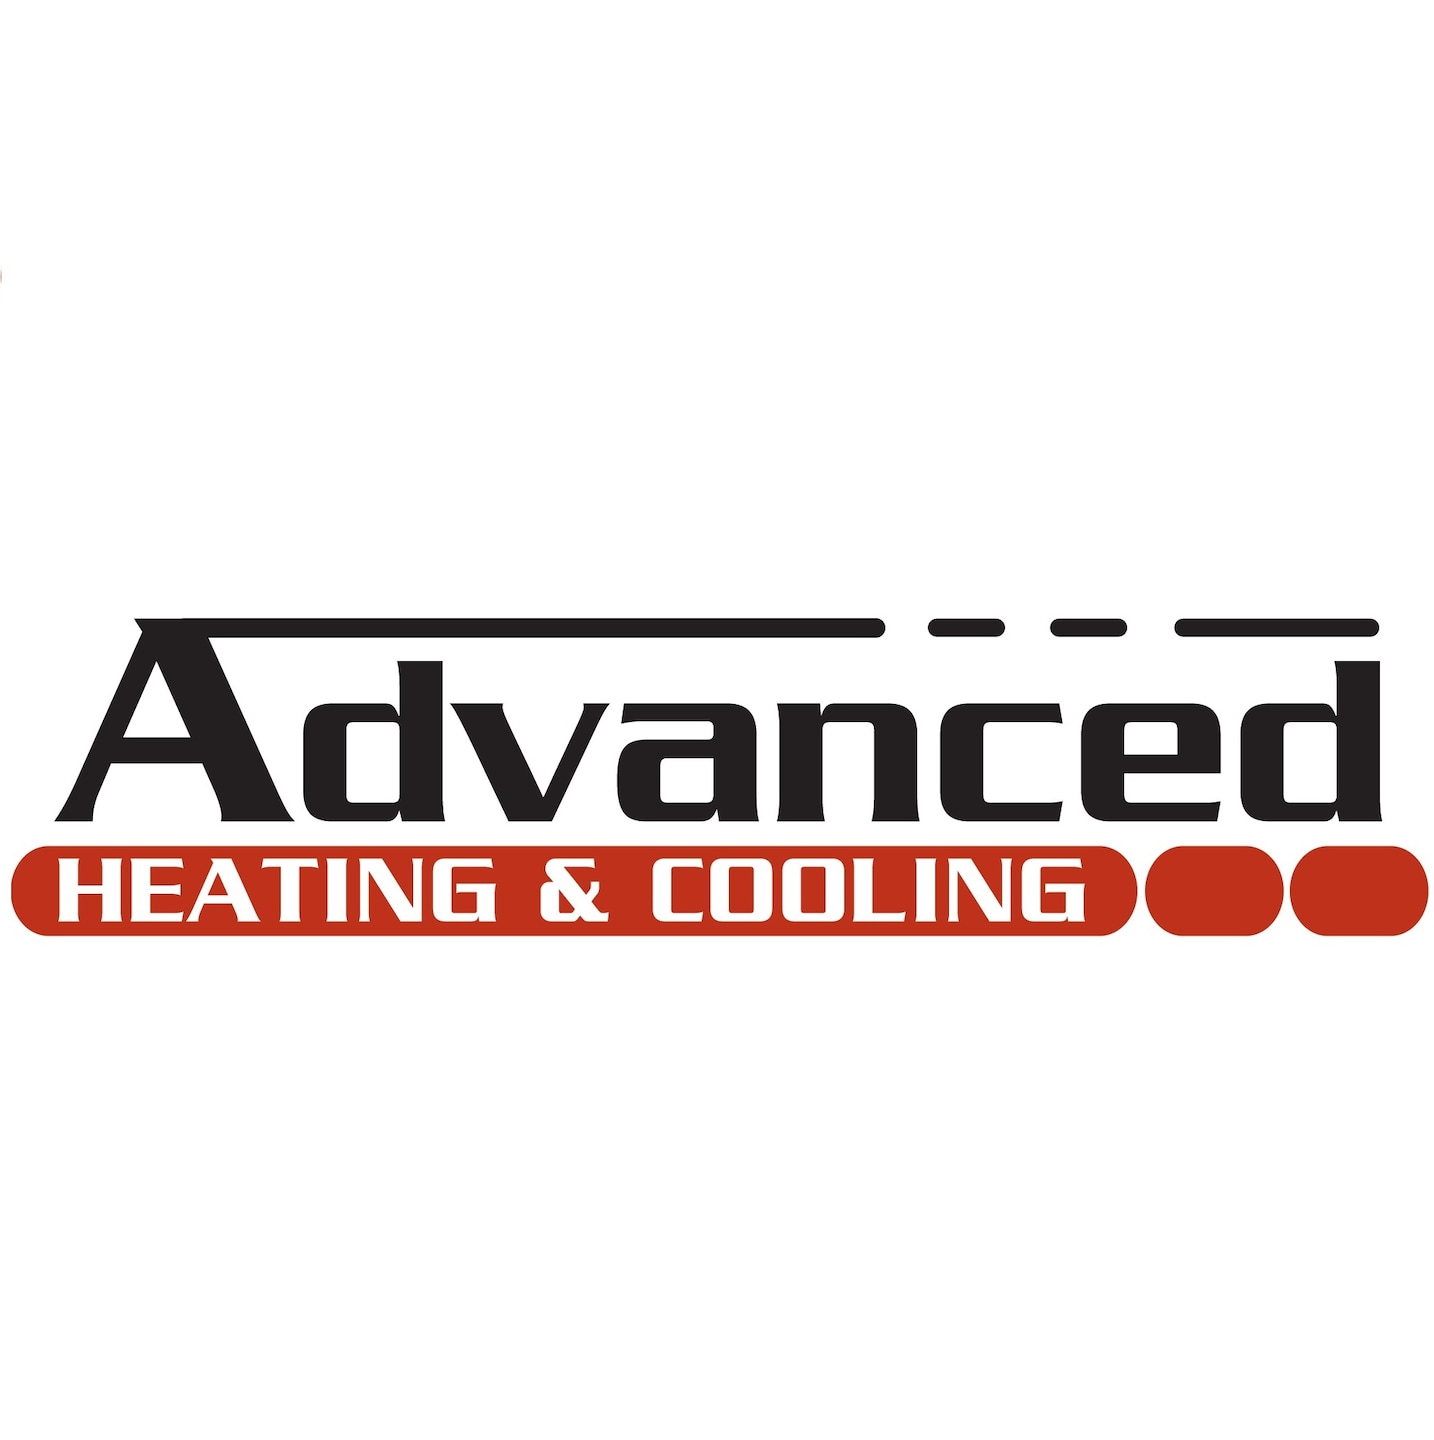 Advanced Heating And Cooling logo